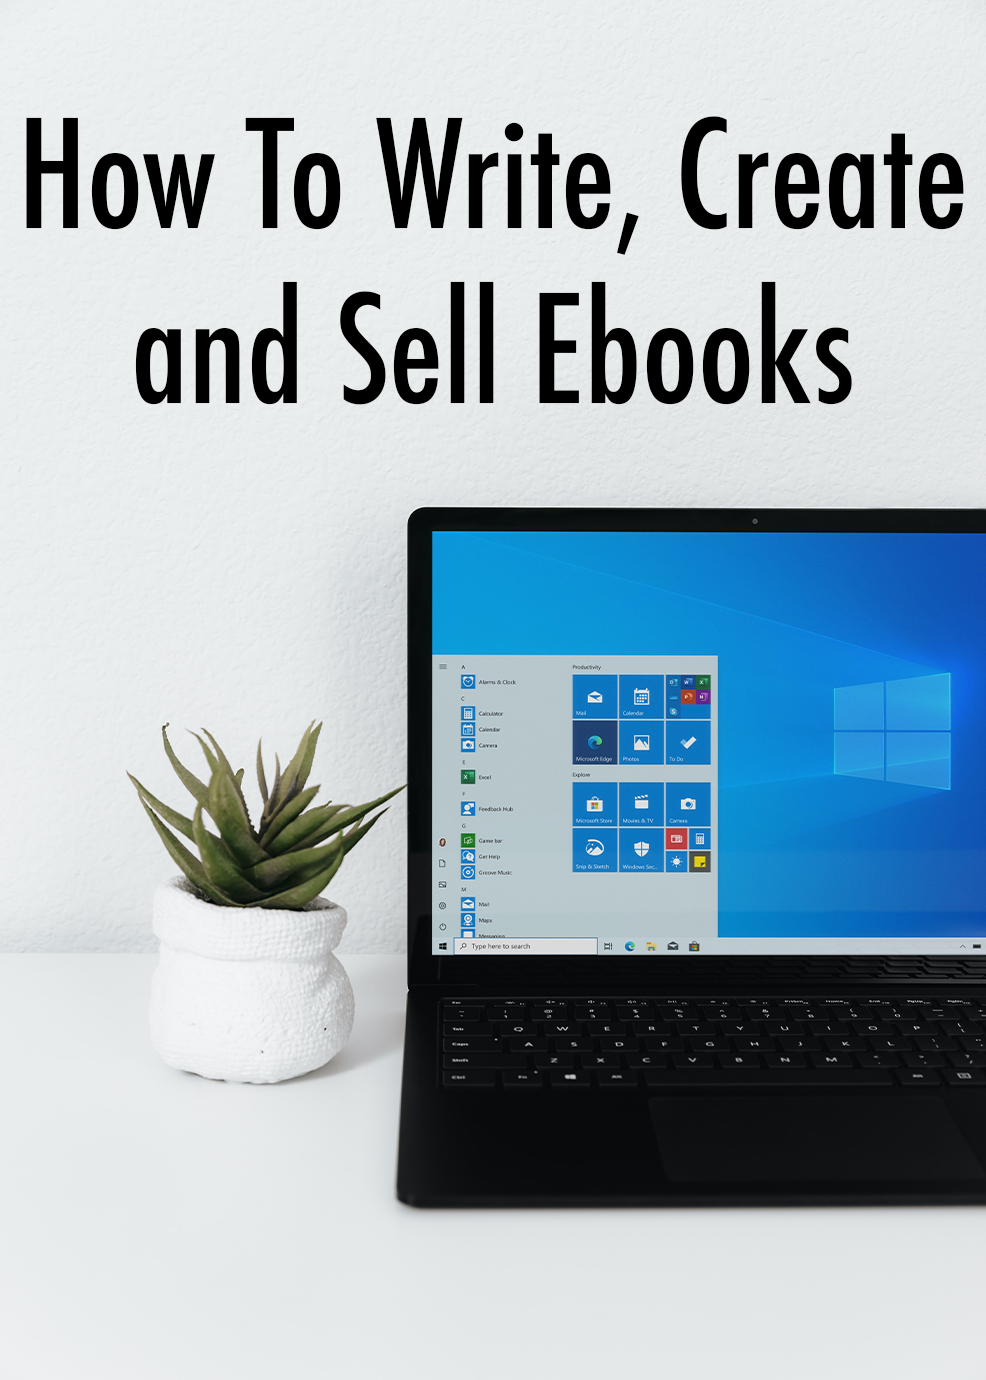 How To Write Create and Sell Ebooks